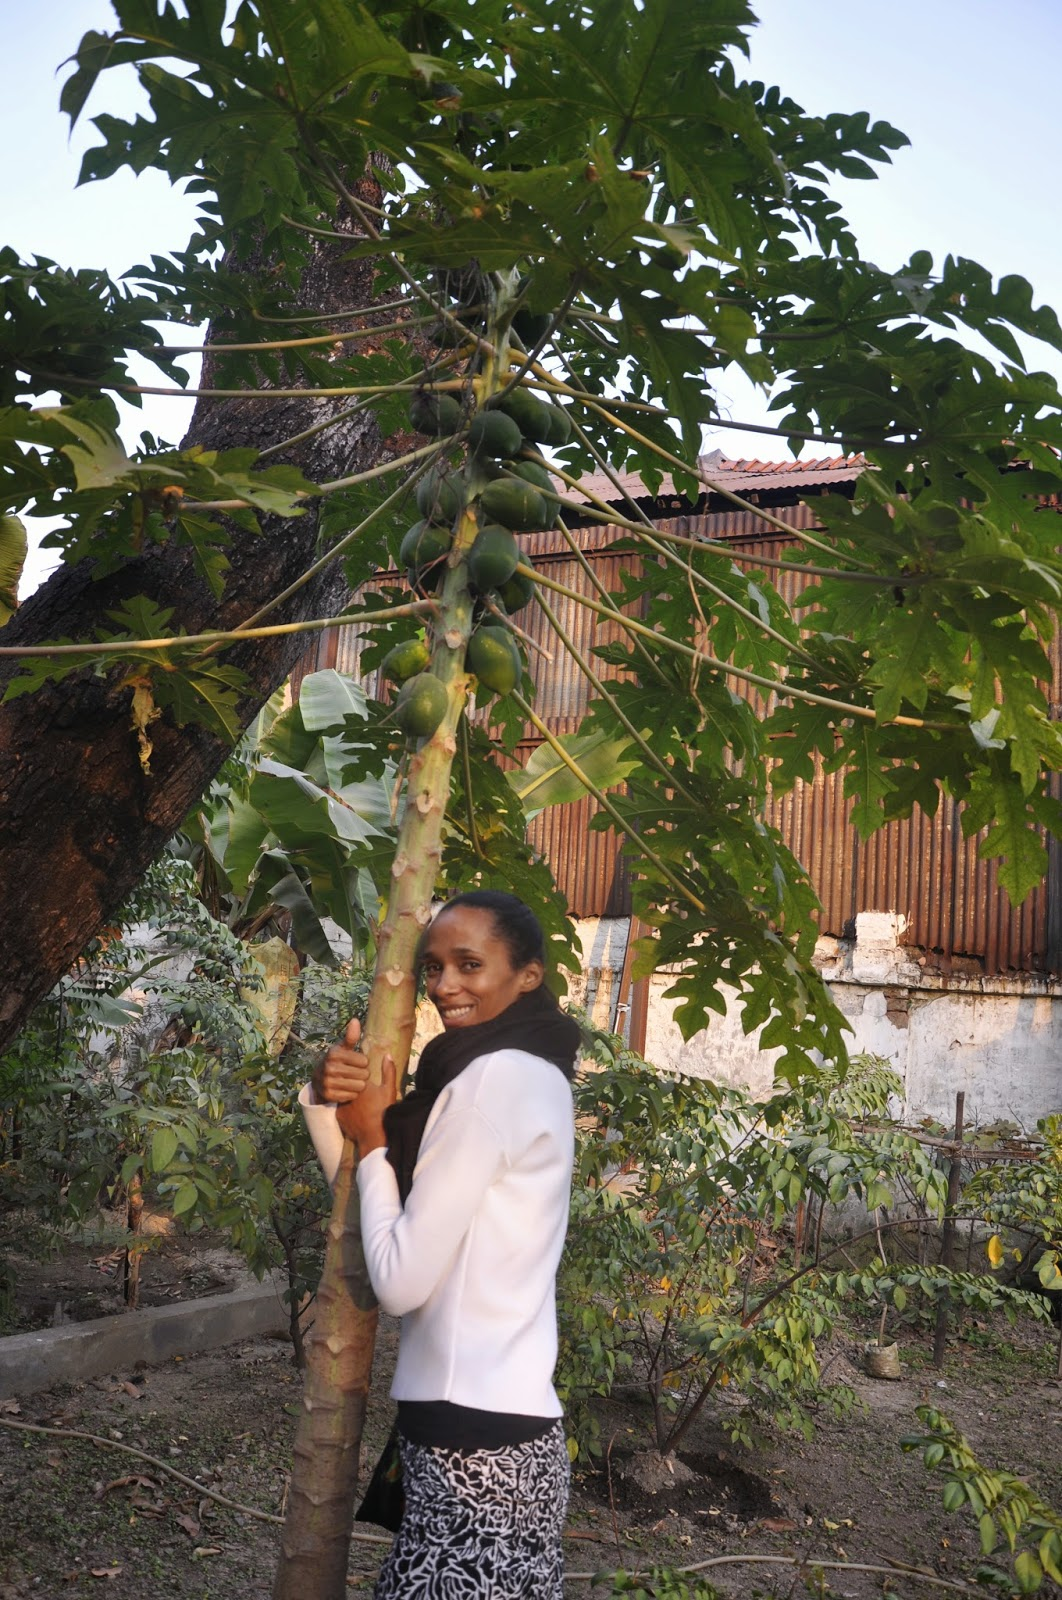 A papaya tree hugger from Germany